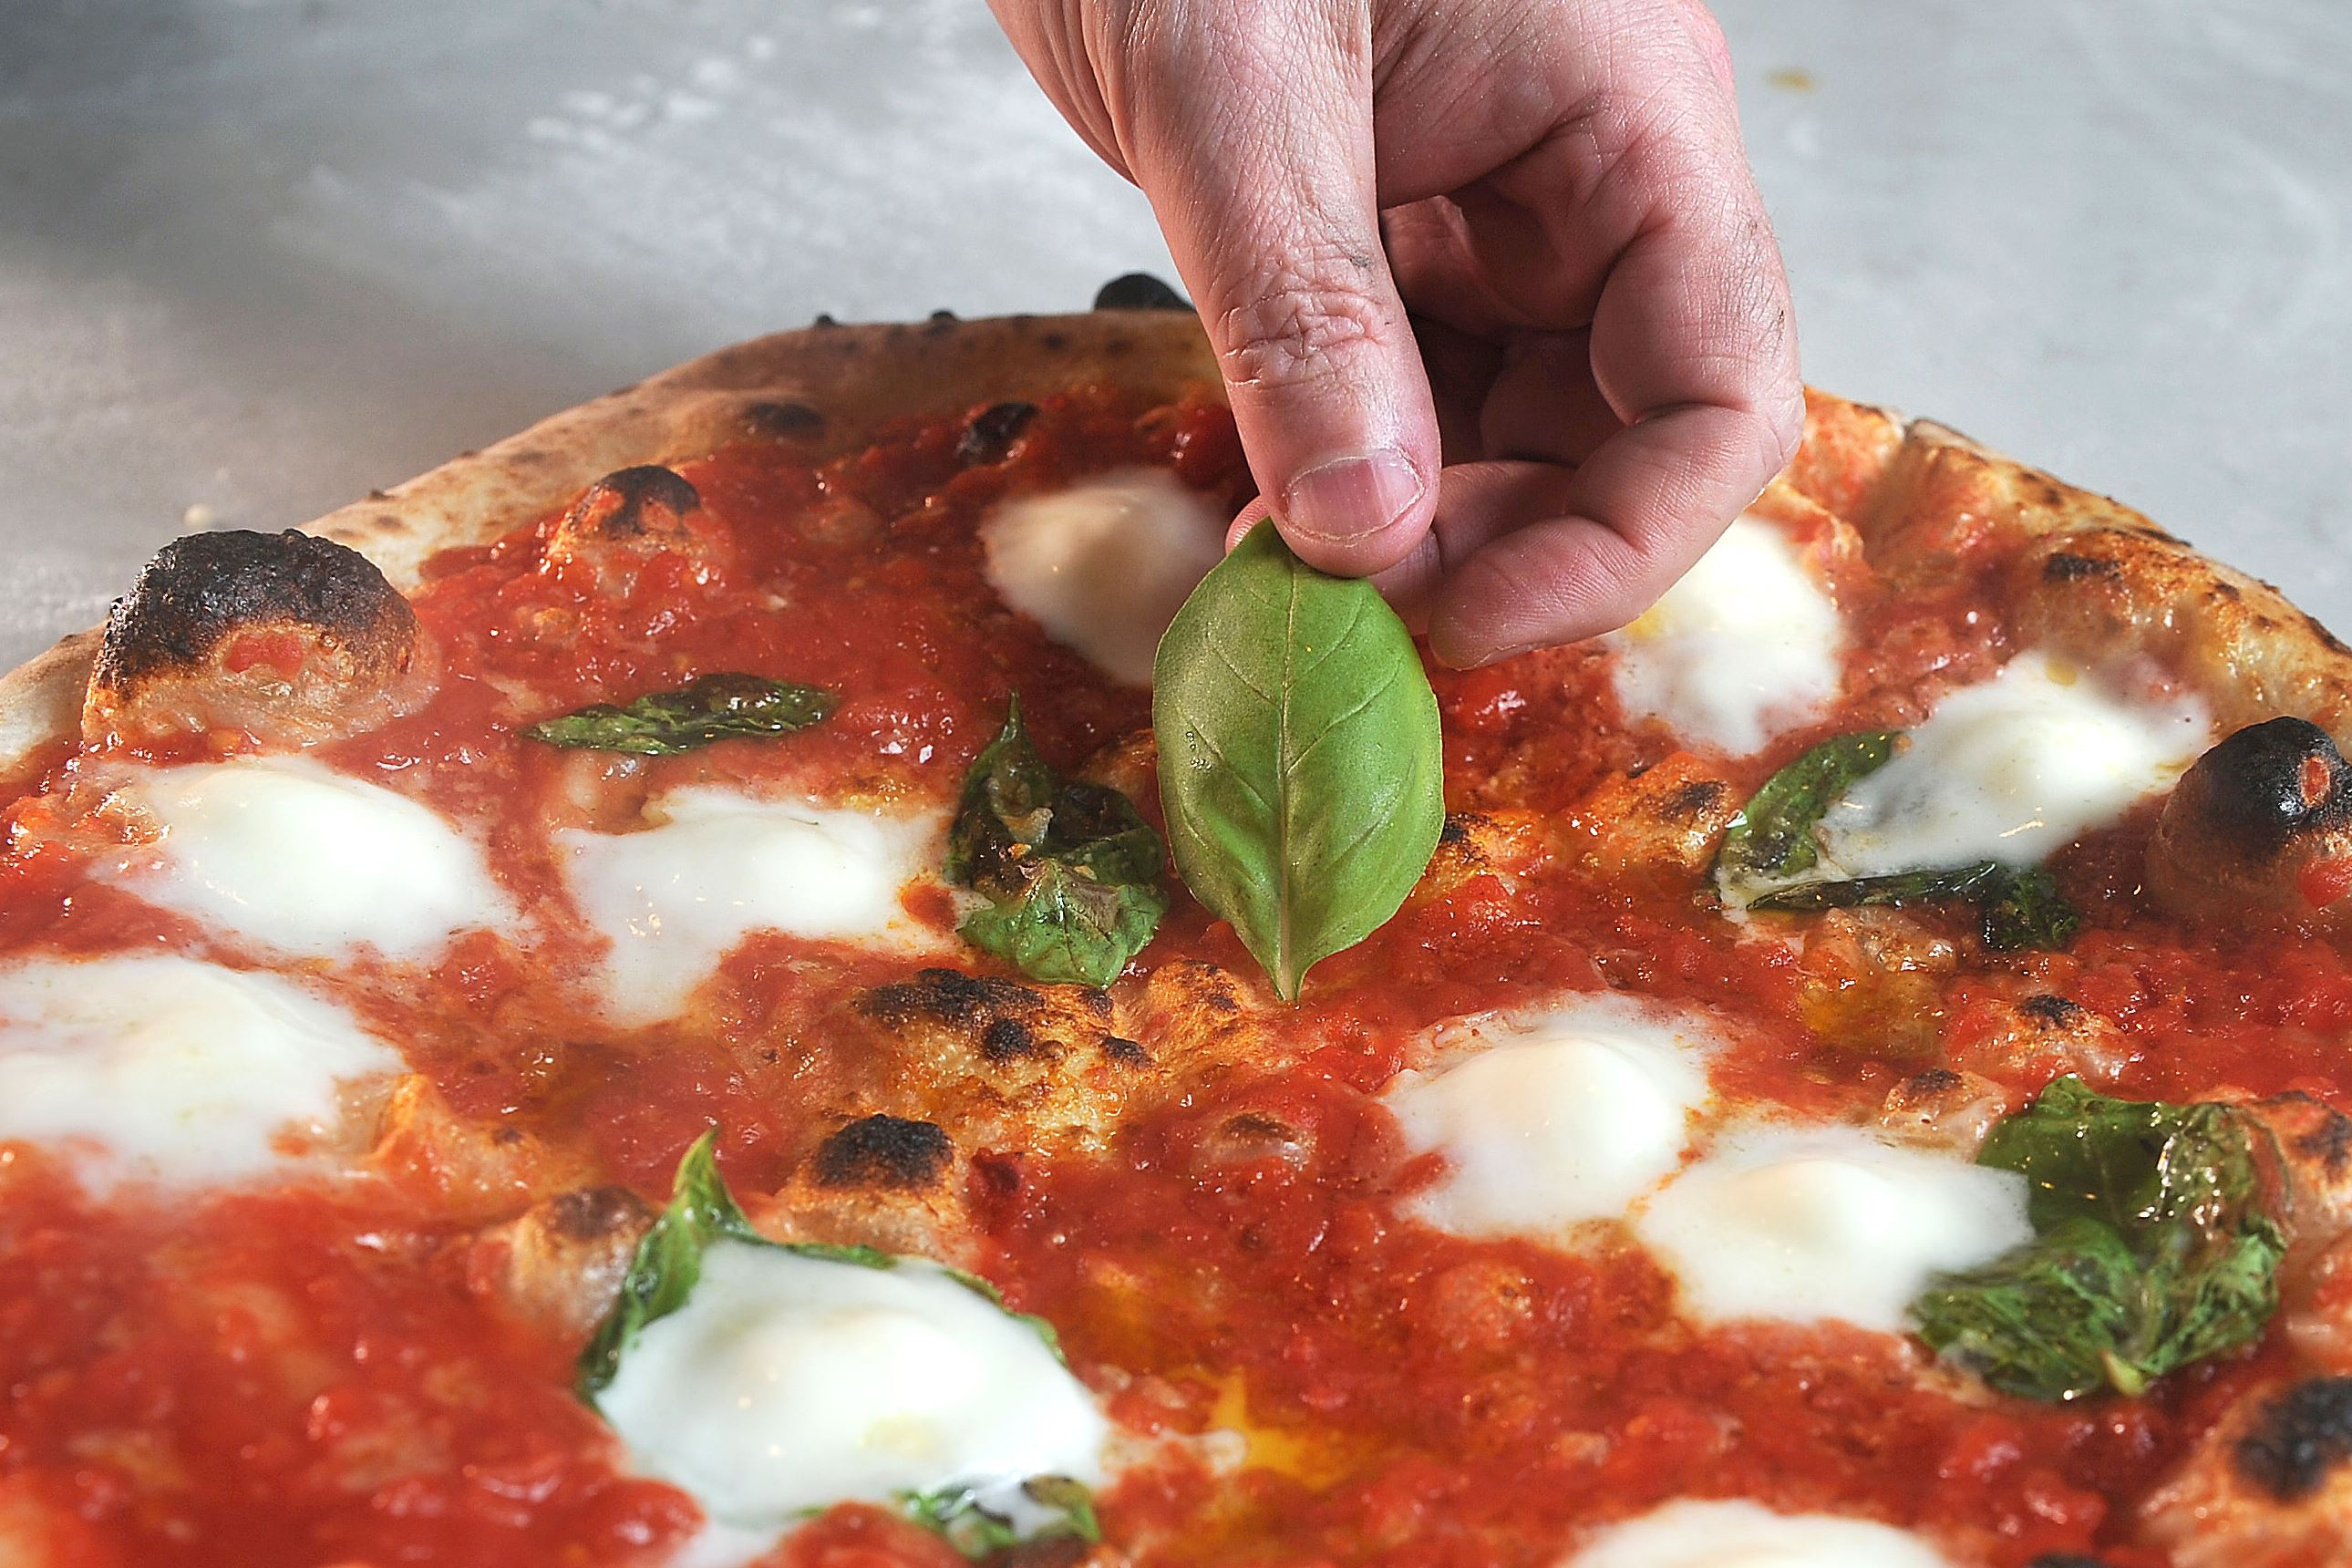 20170601ng-Pizzaiola4-3 Ron Molinaro, executive chef and owner of Il Pizzaiolo in Glenshaw, prepares a high-quality, Neapolitan-style pizza, in his restaurant.